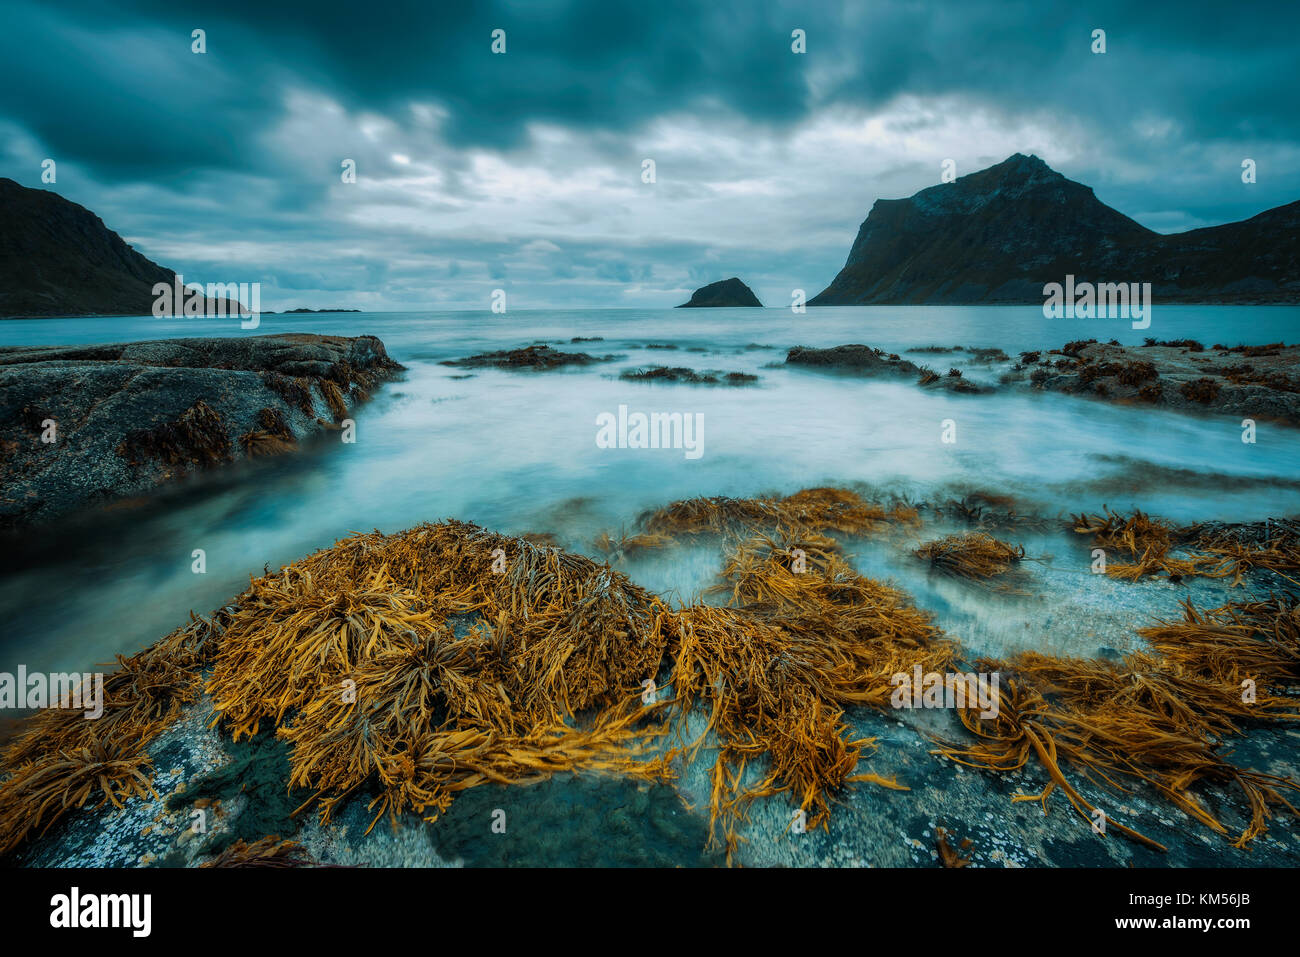 Haukland beach on Lofoten islands in Norway - Stock Image